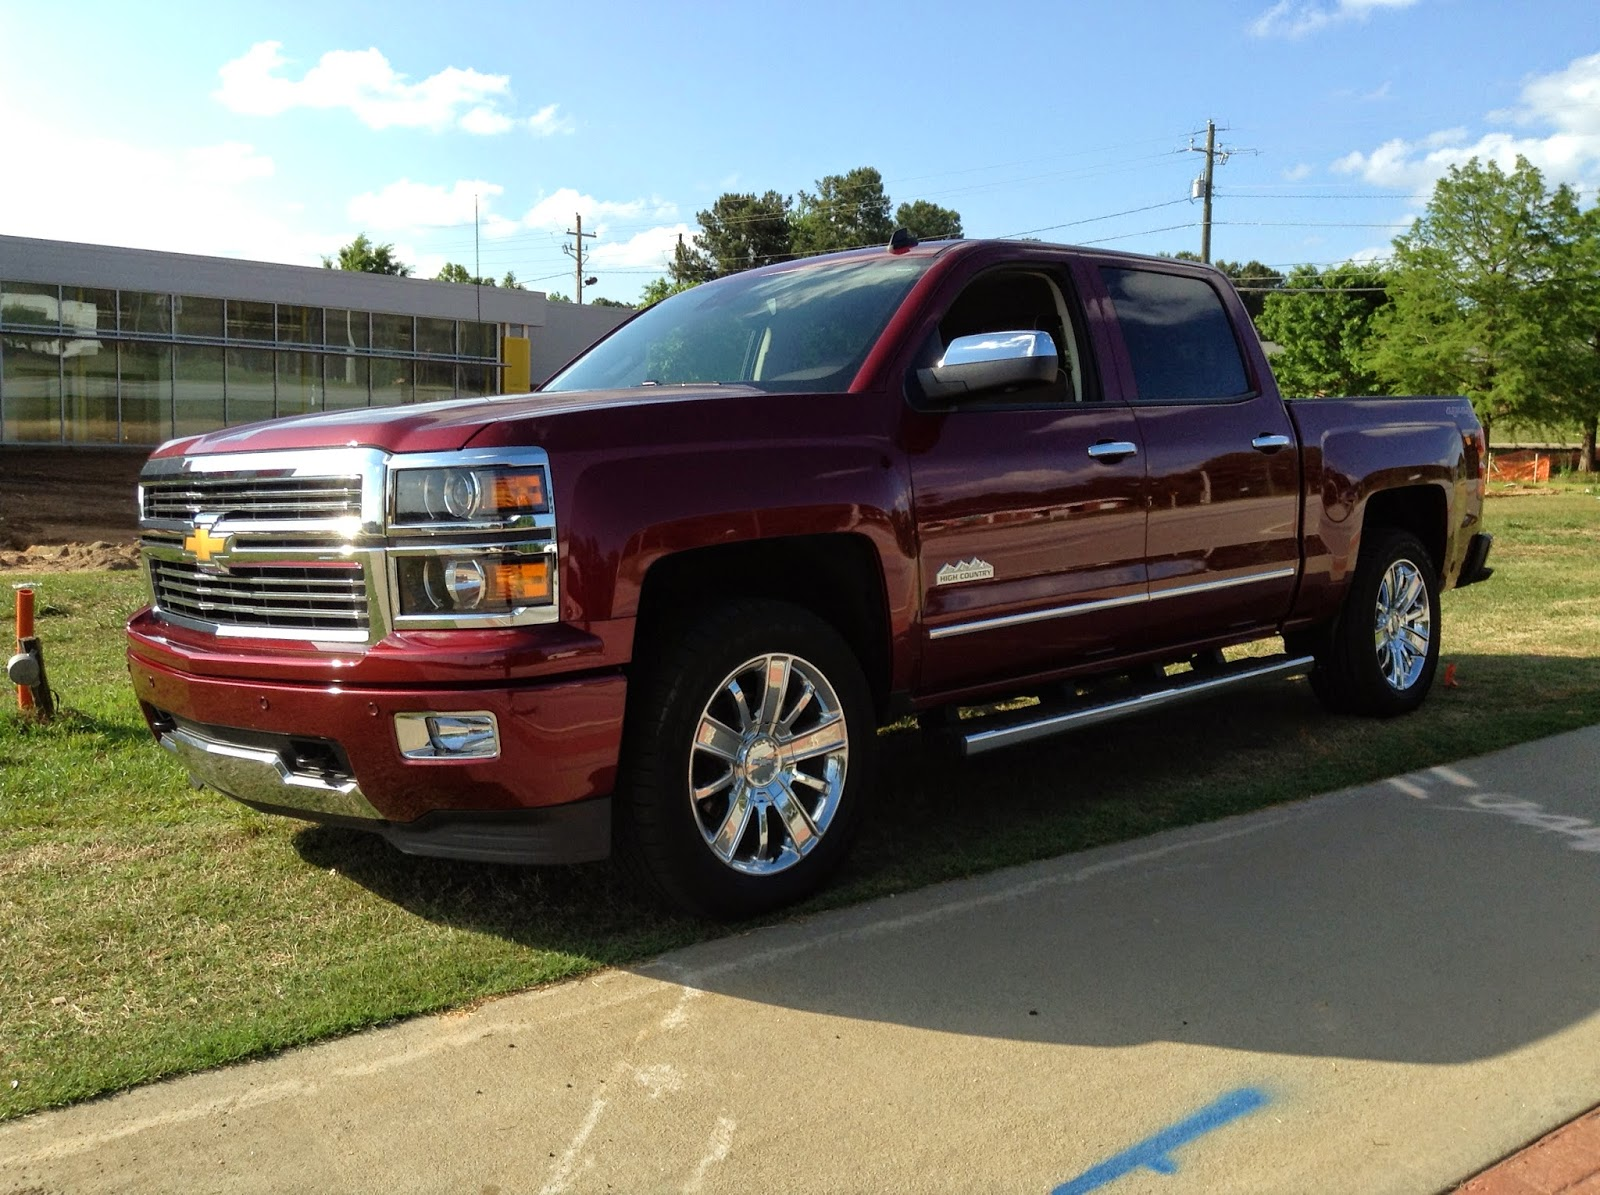 14 chevy silverado lt crew 4x4 1500 towing capacity autos post. Black Bedroom Furniture Sets. Home Design Ideas